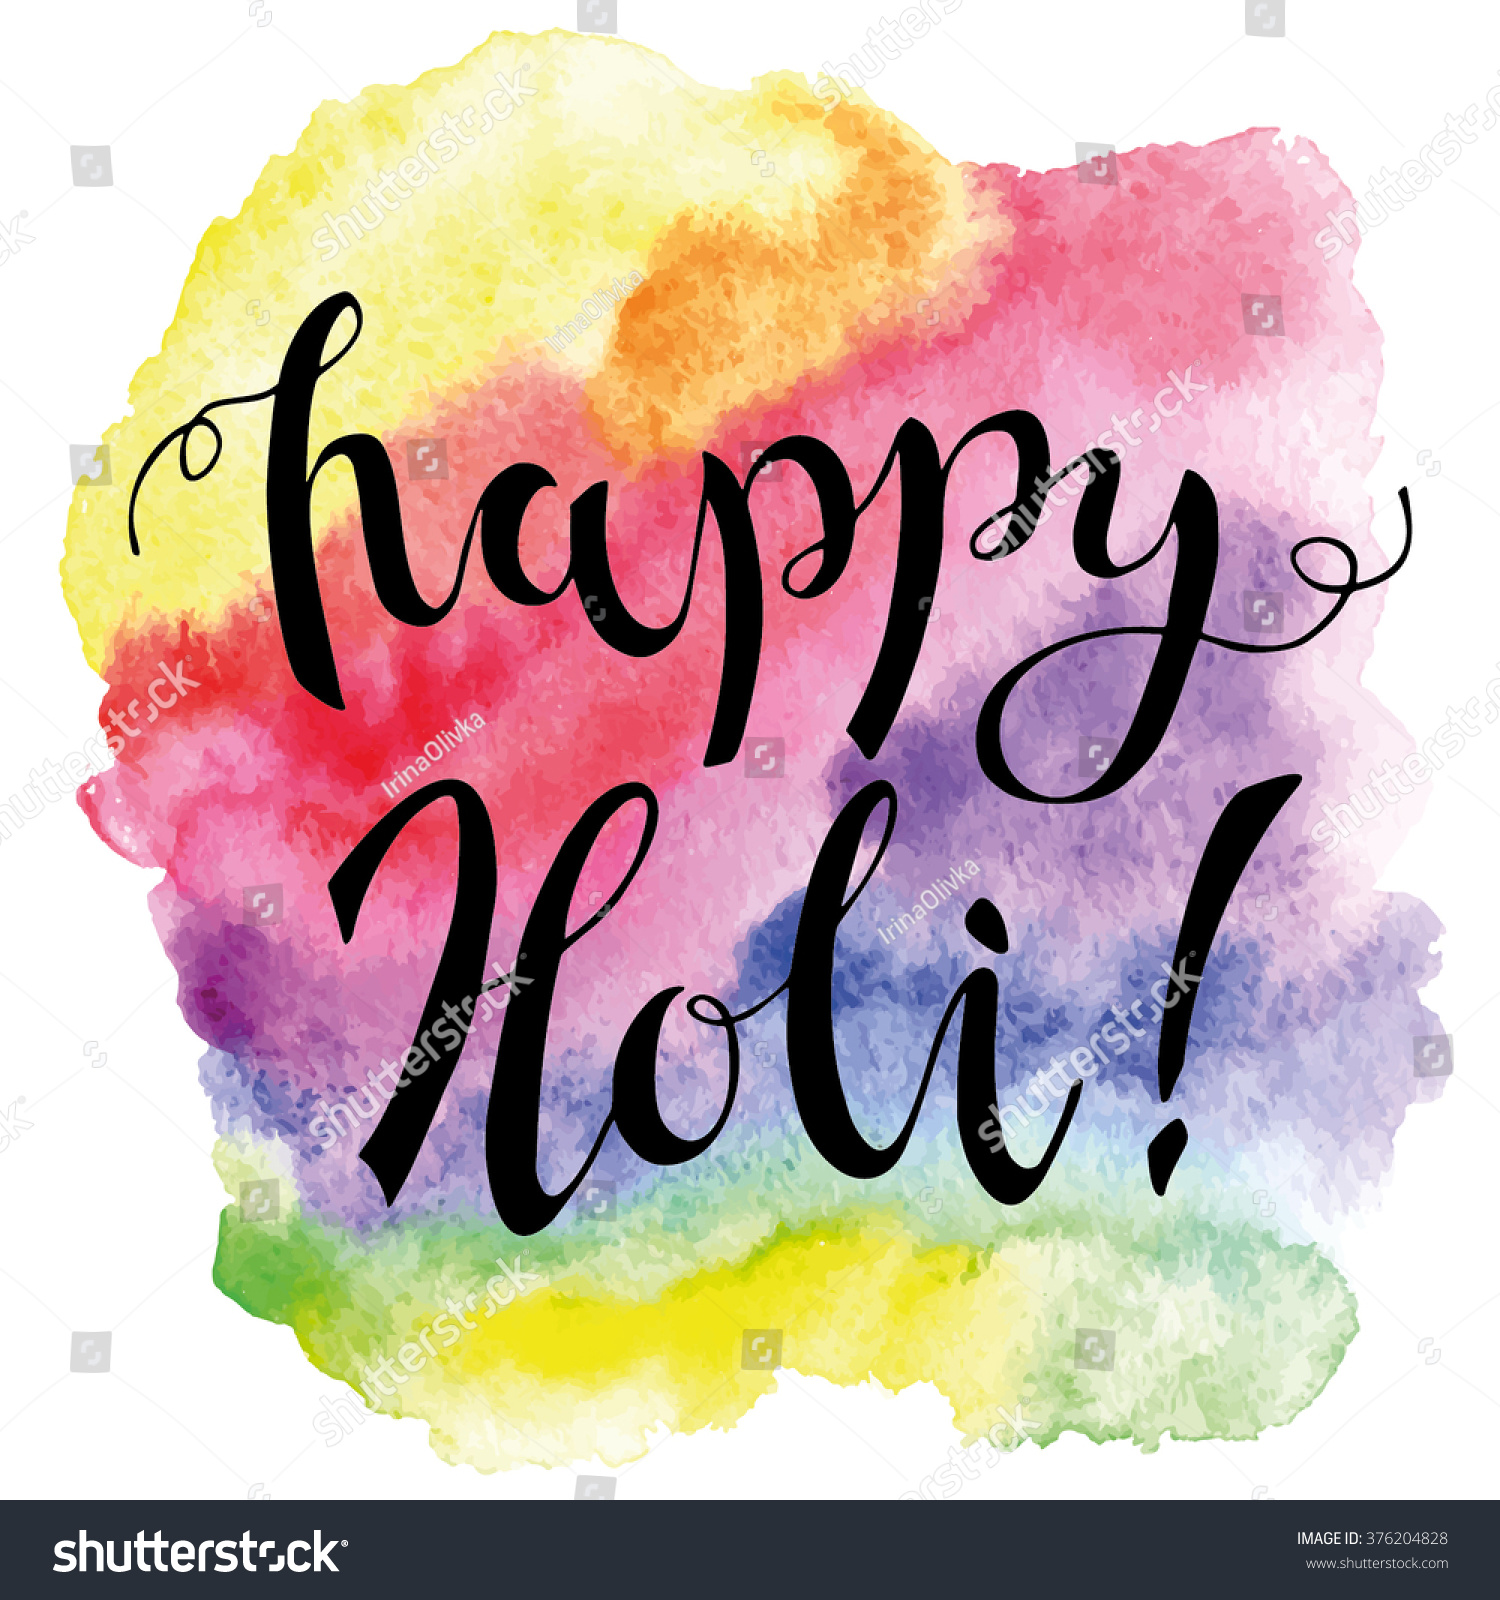 Happy holi calligraphy on colorful watercolor stock vector